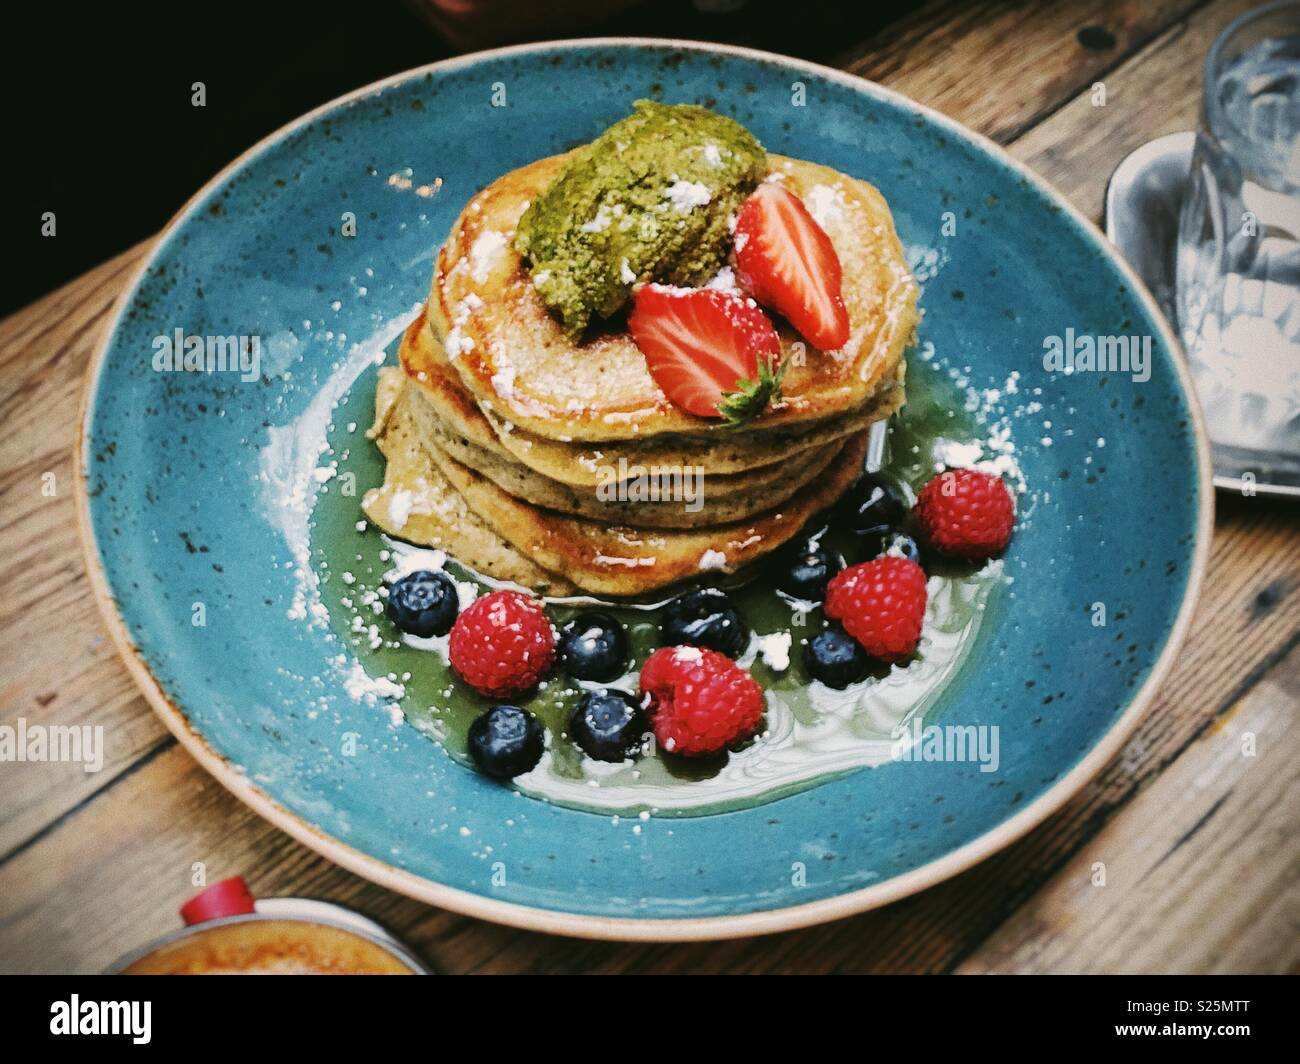 Pancakes with berries on a blue plate on top of a wooden table - Stock Image